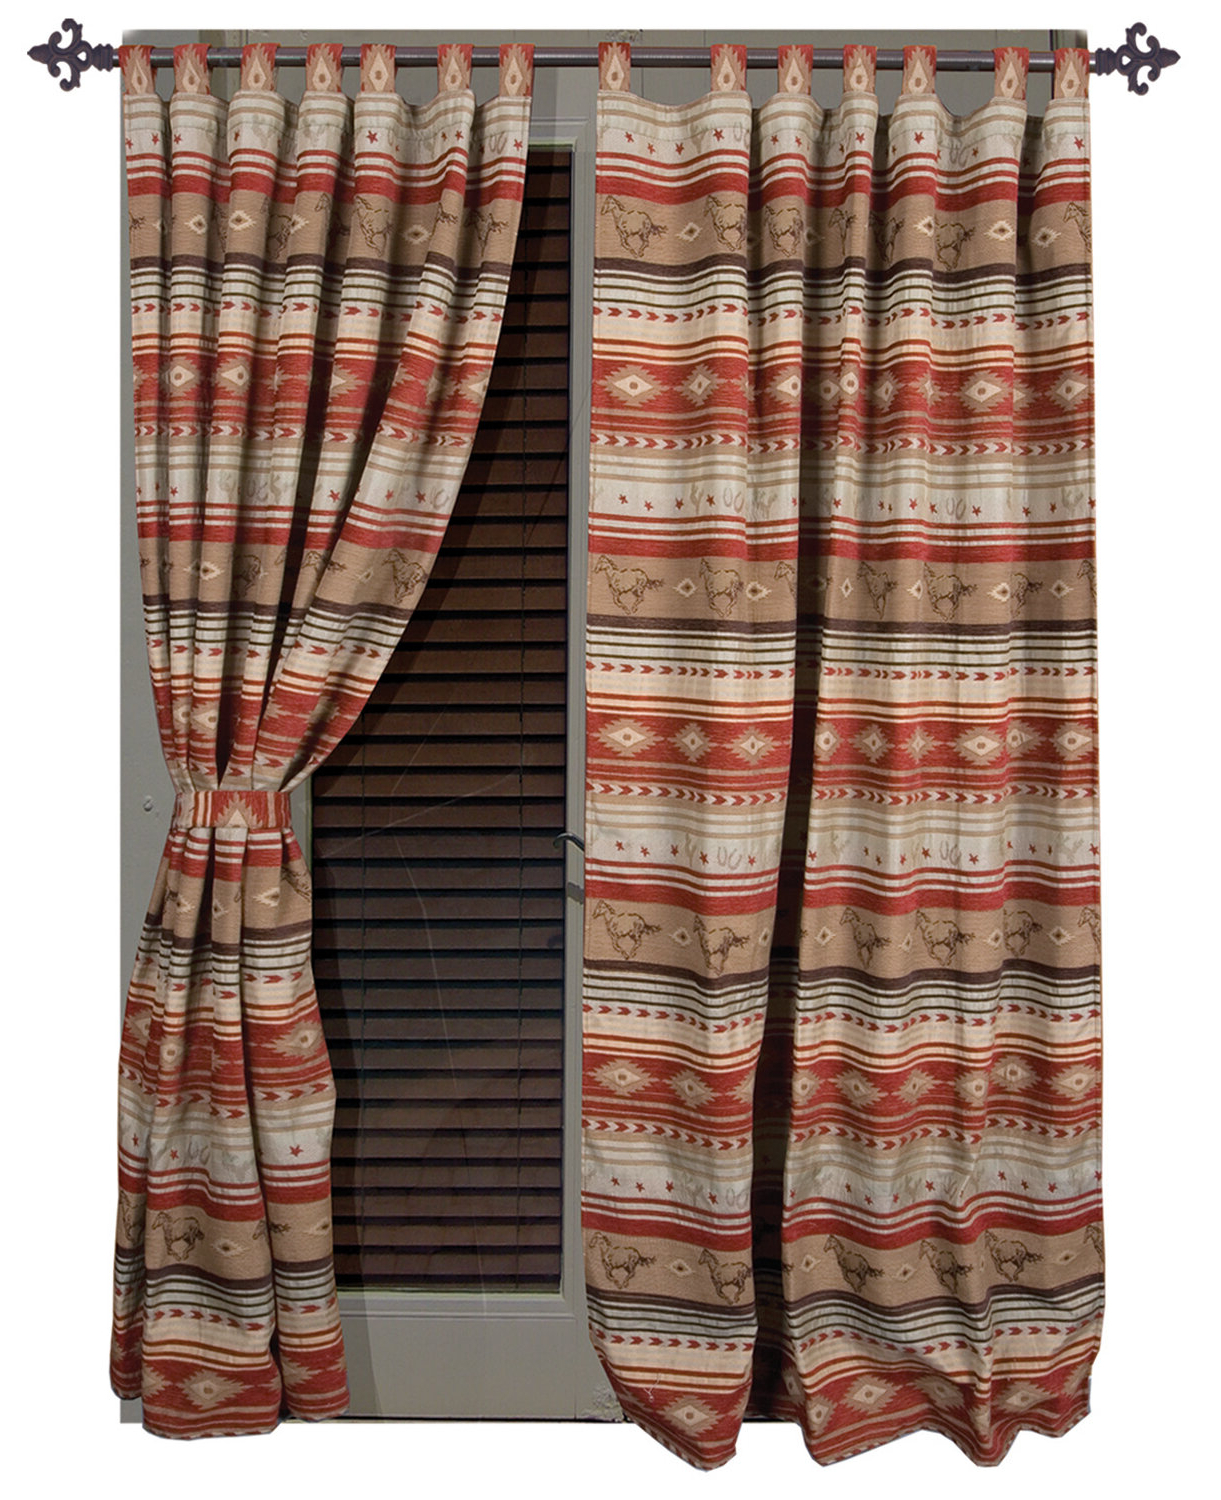 Complete Cottage Curtain Sets With An Antique And Aubergine Grapvine Print Within Most Recently Released Suhel Striped Tab Top Curtain Panels (View 5 of 20)